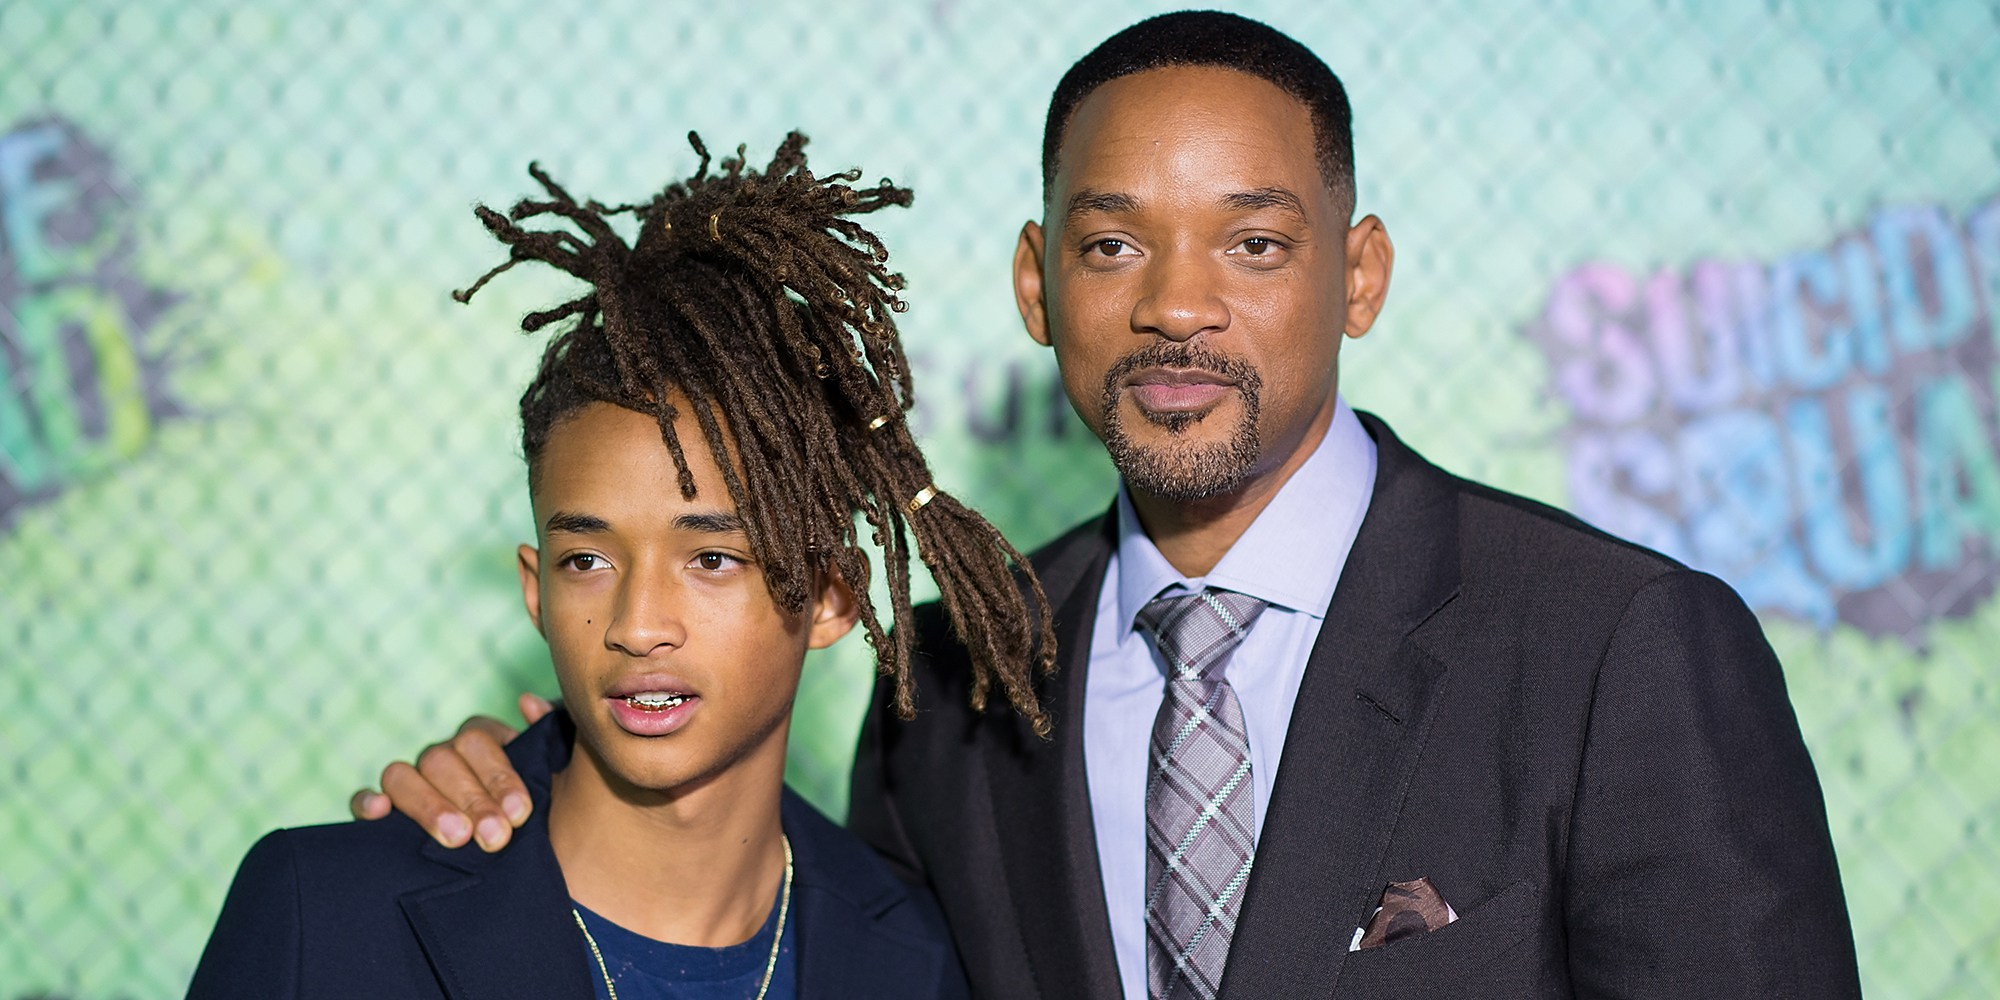 Will and Jaden Smith to donate water to Flint schools